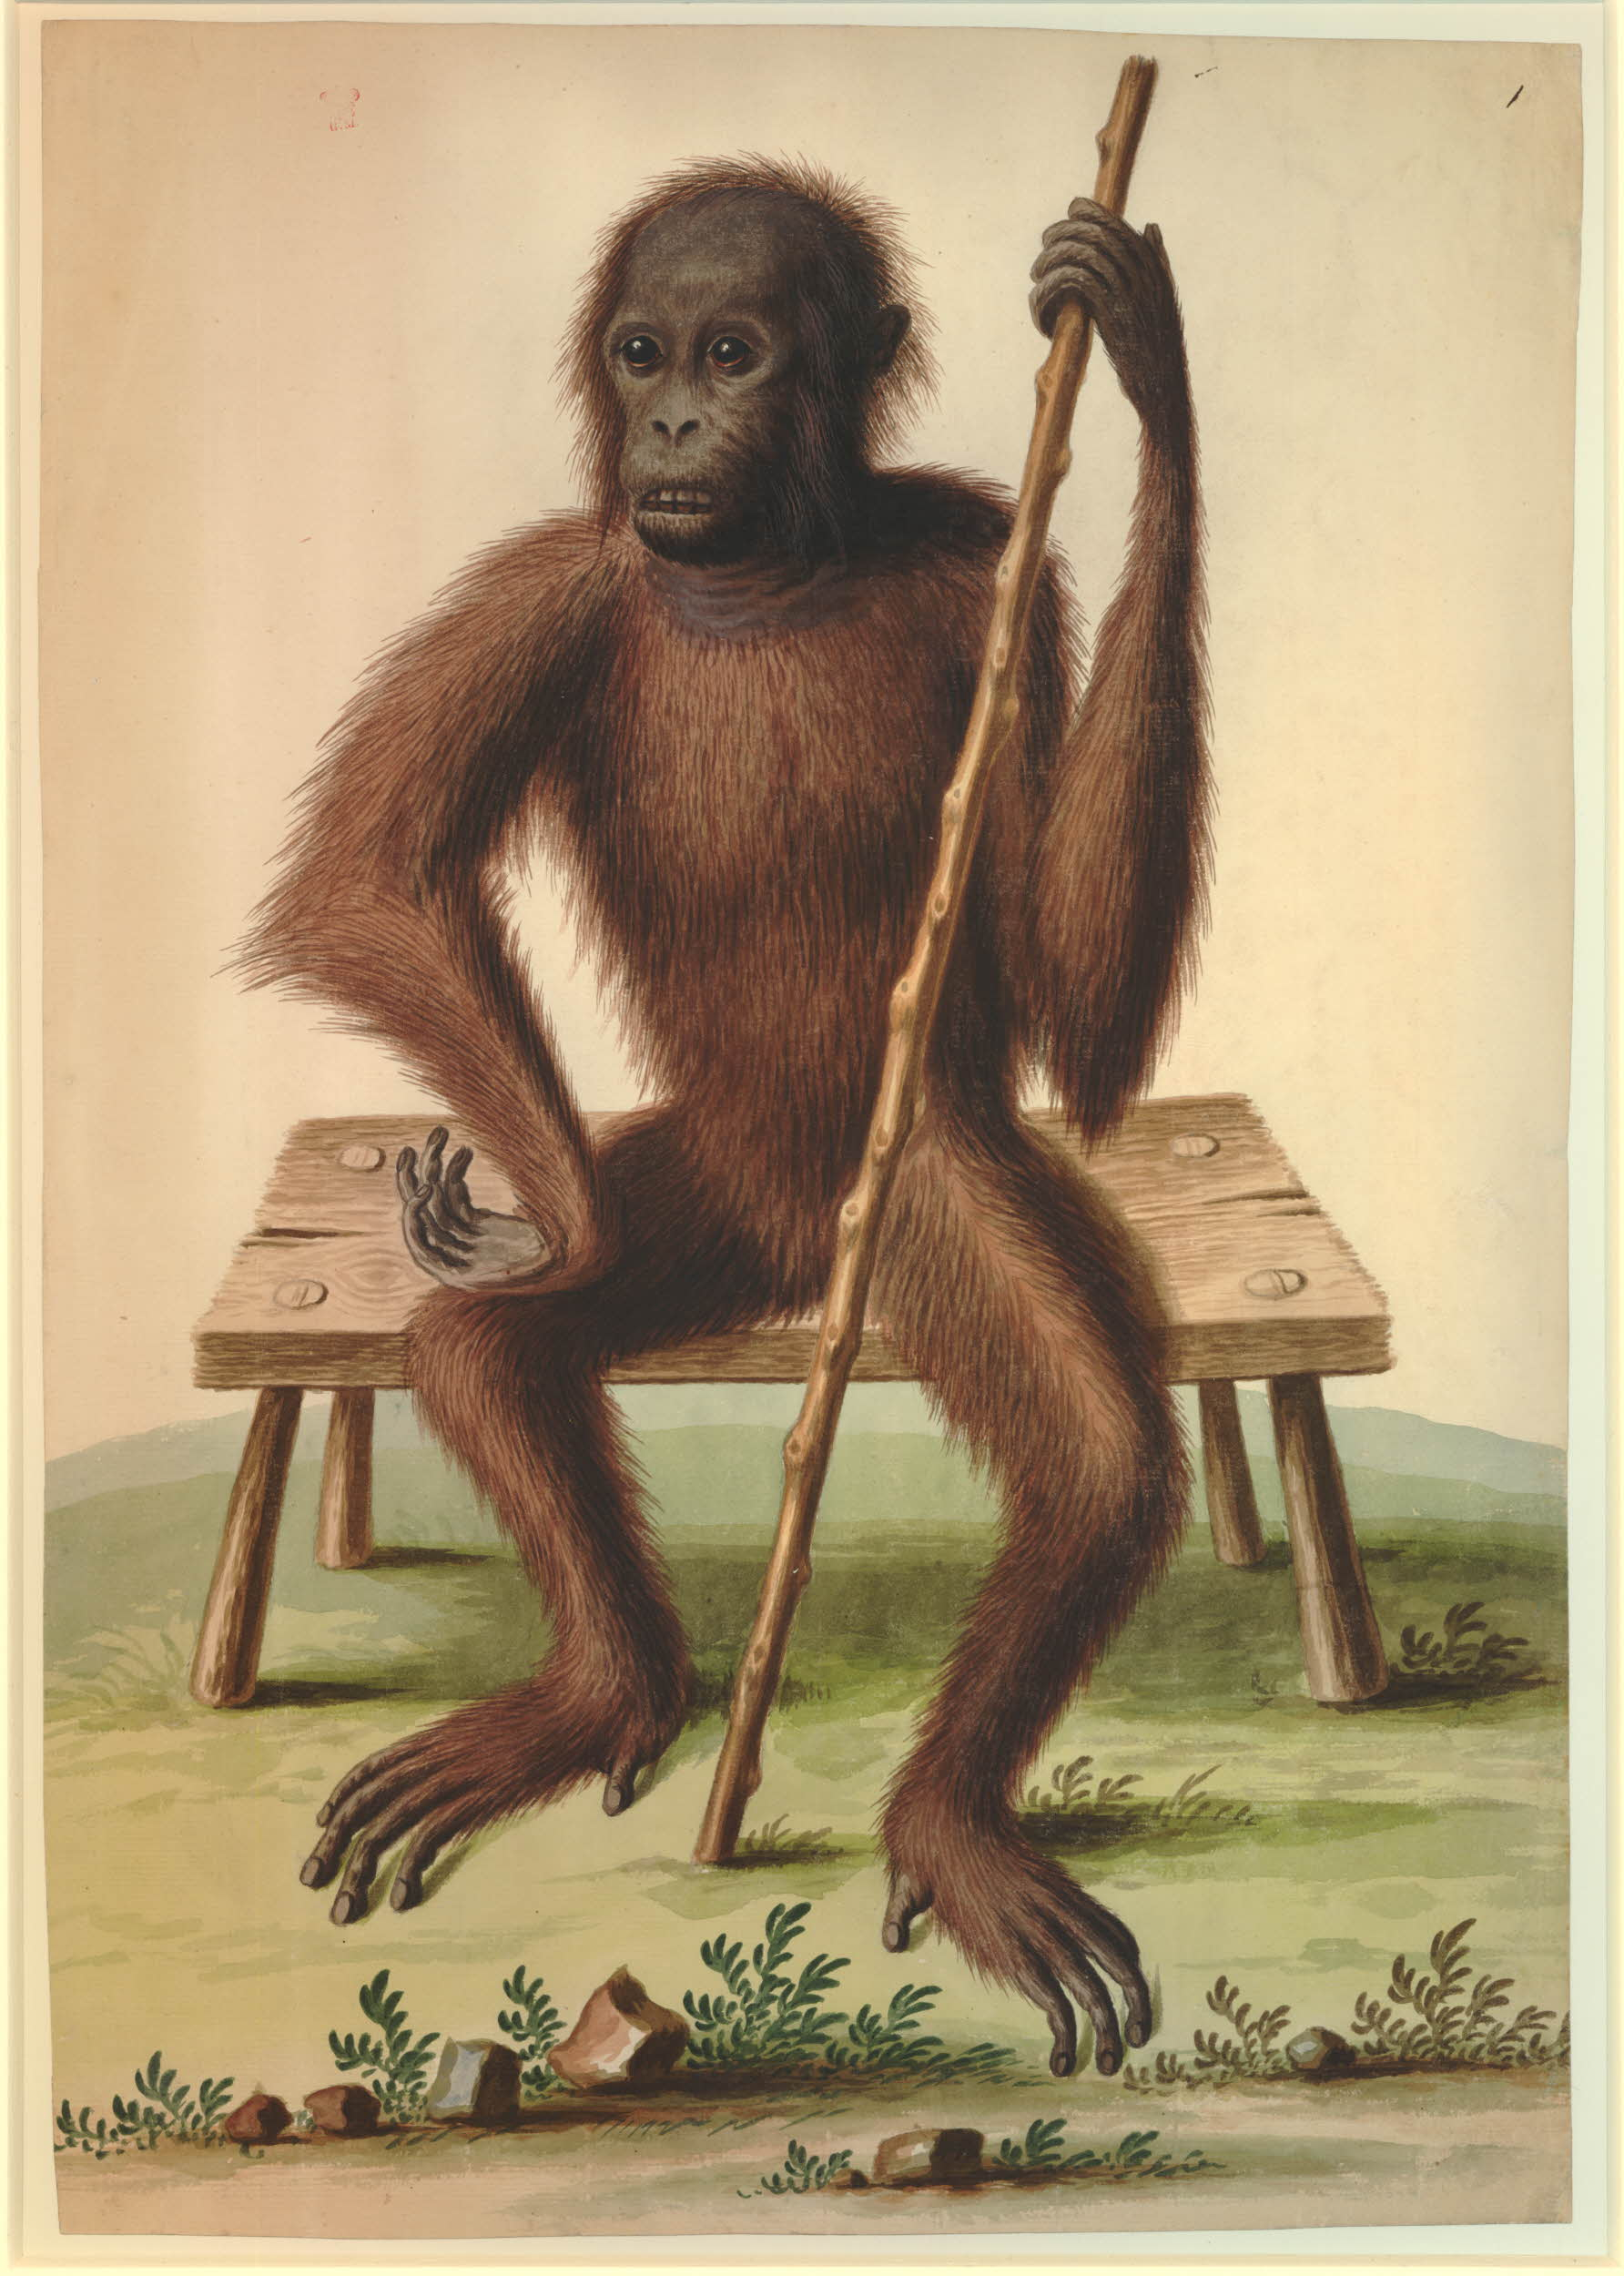 A watercolour painting of an orangutan, seated upright with a stick